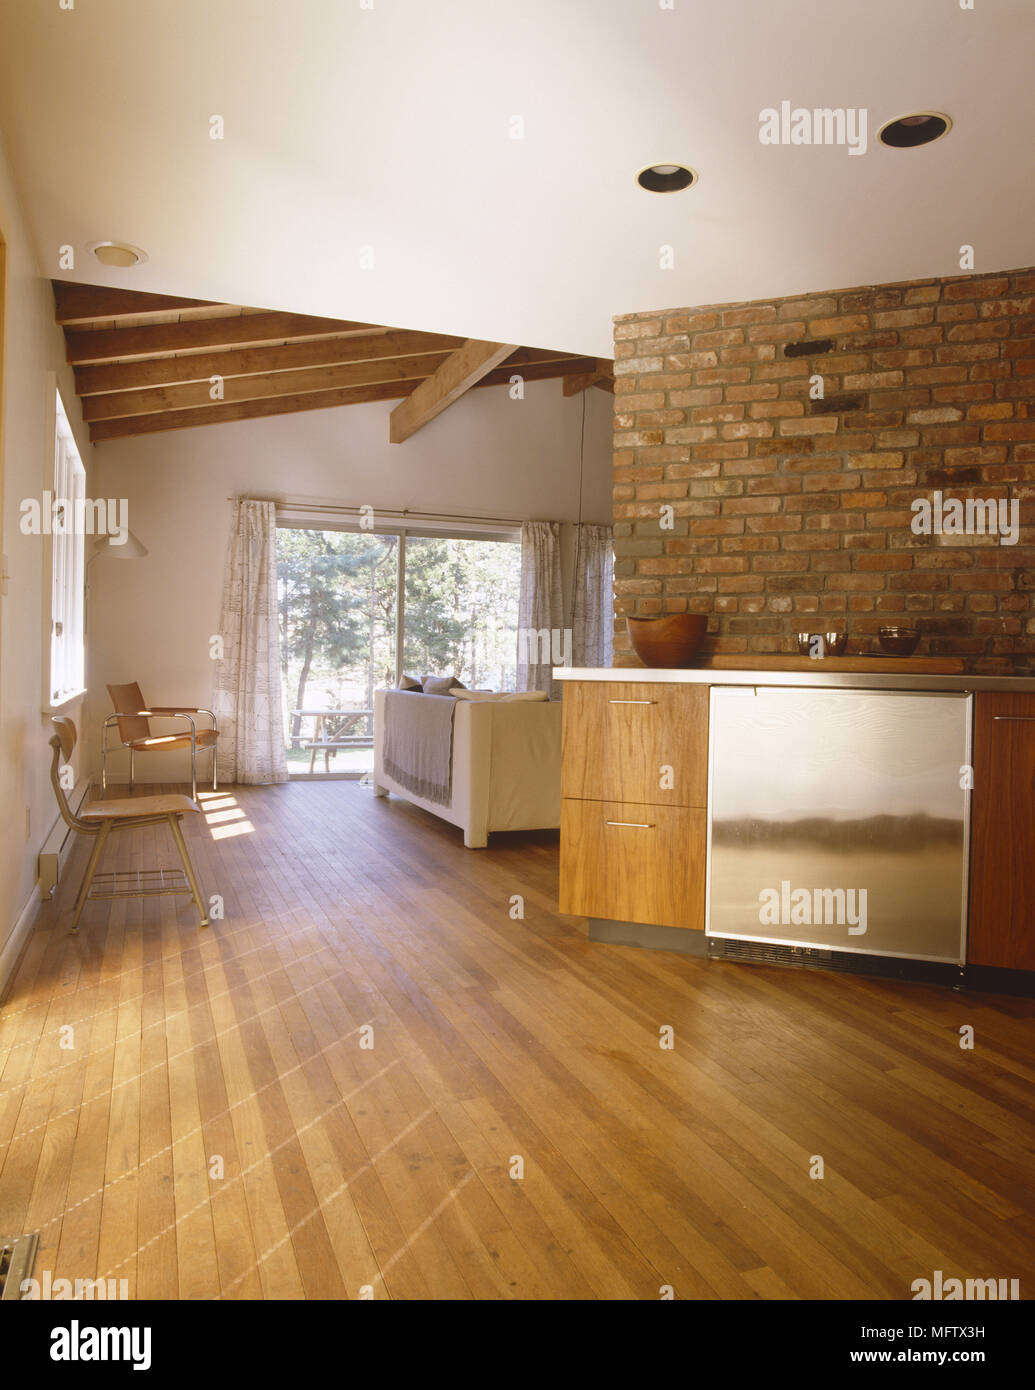 Open plan kitchen leading through to sitting room with wooden flooring and ceiling and bare brick wall Stock Photo